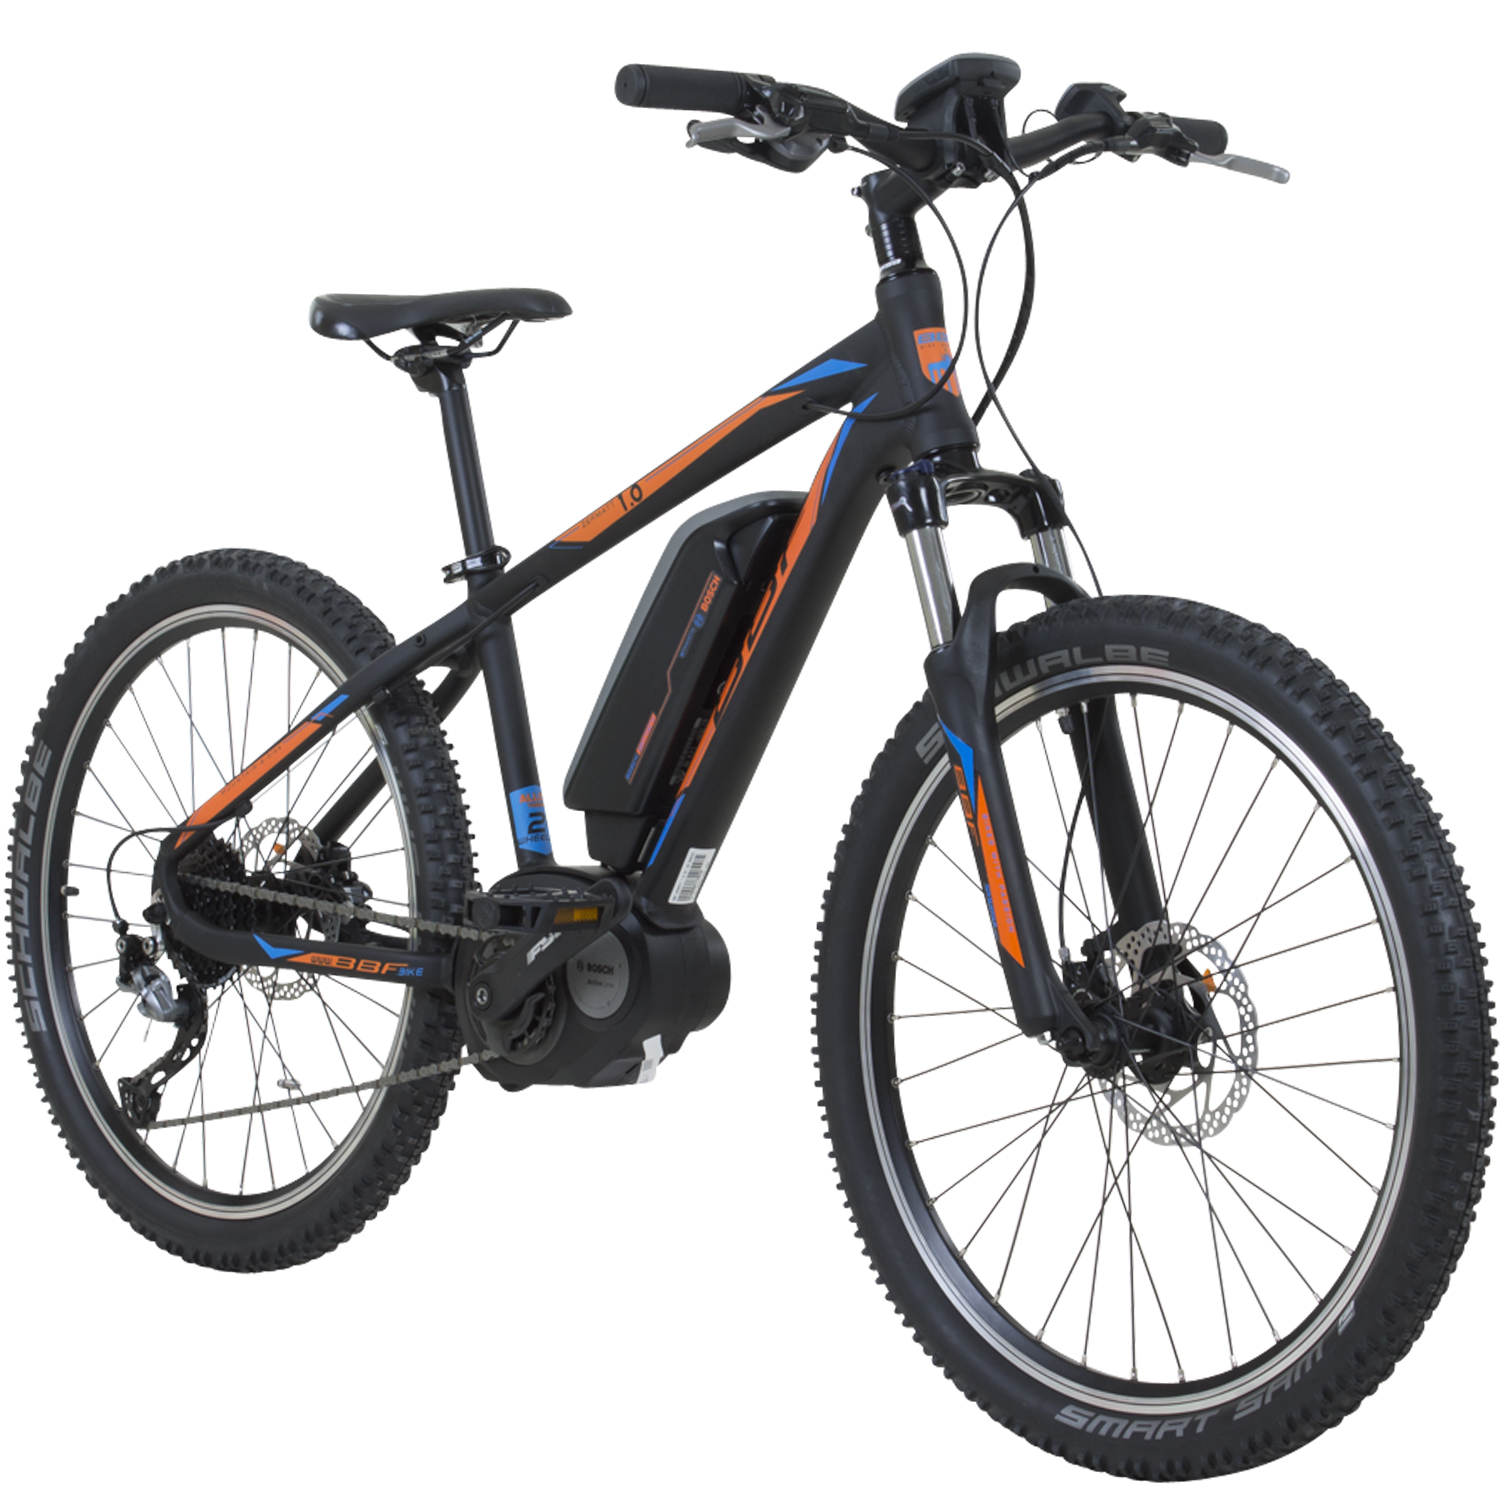 bbf bikes zermatt 1 0 bosch g2 elektromountainbike e bike. Black Bedroom Furniture Sets. Home Design Ideas